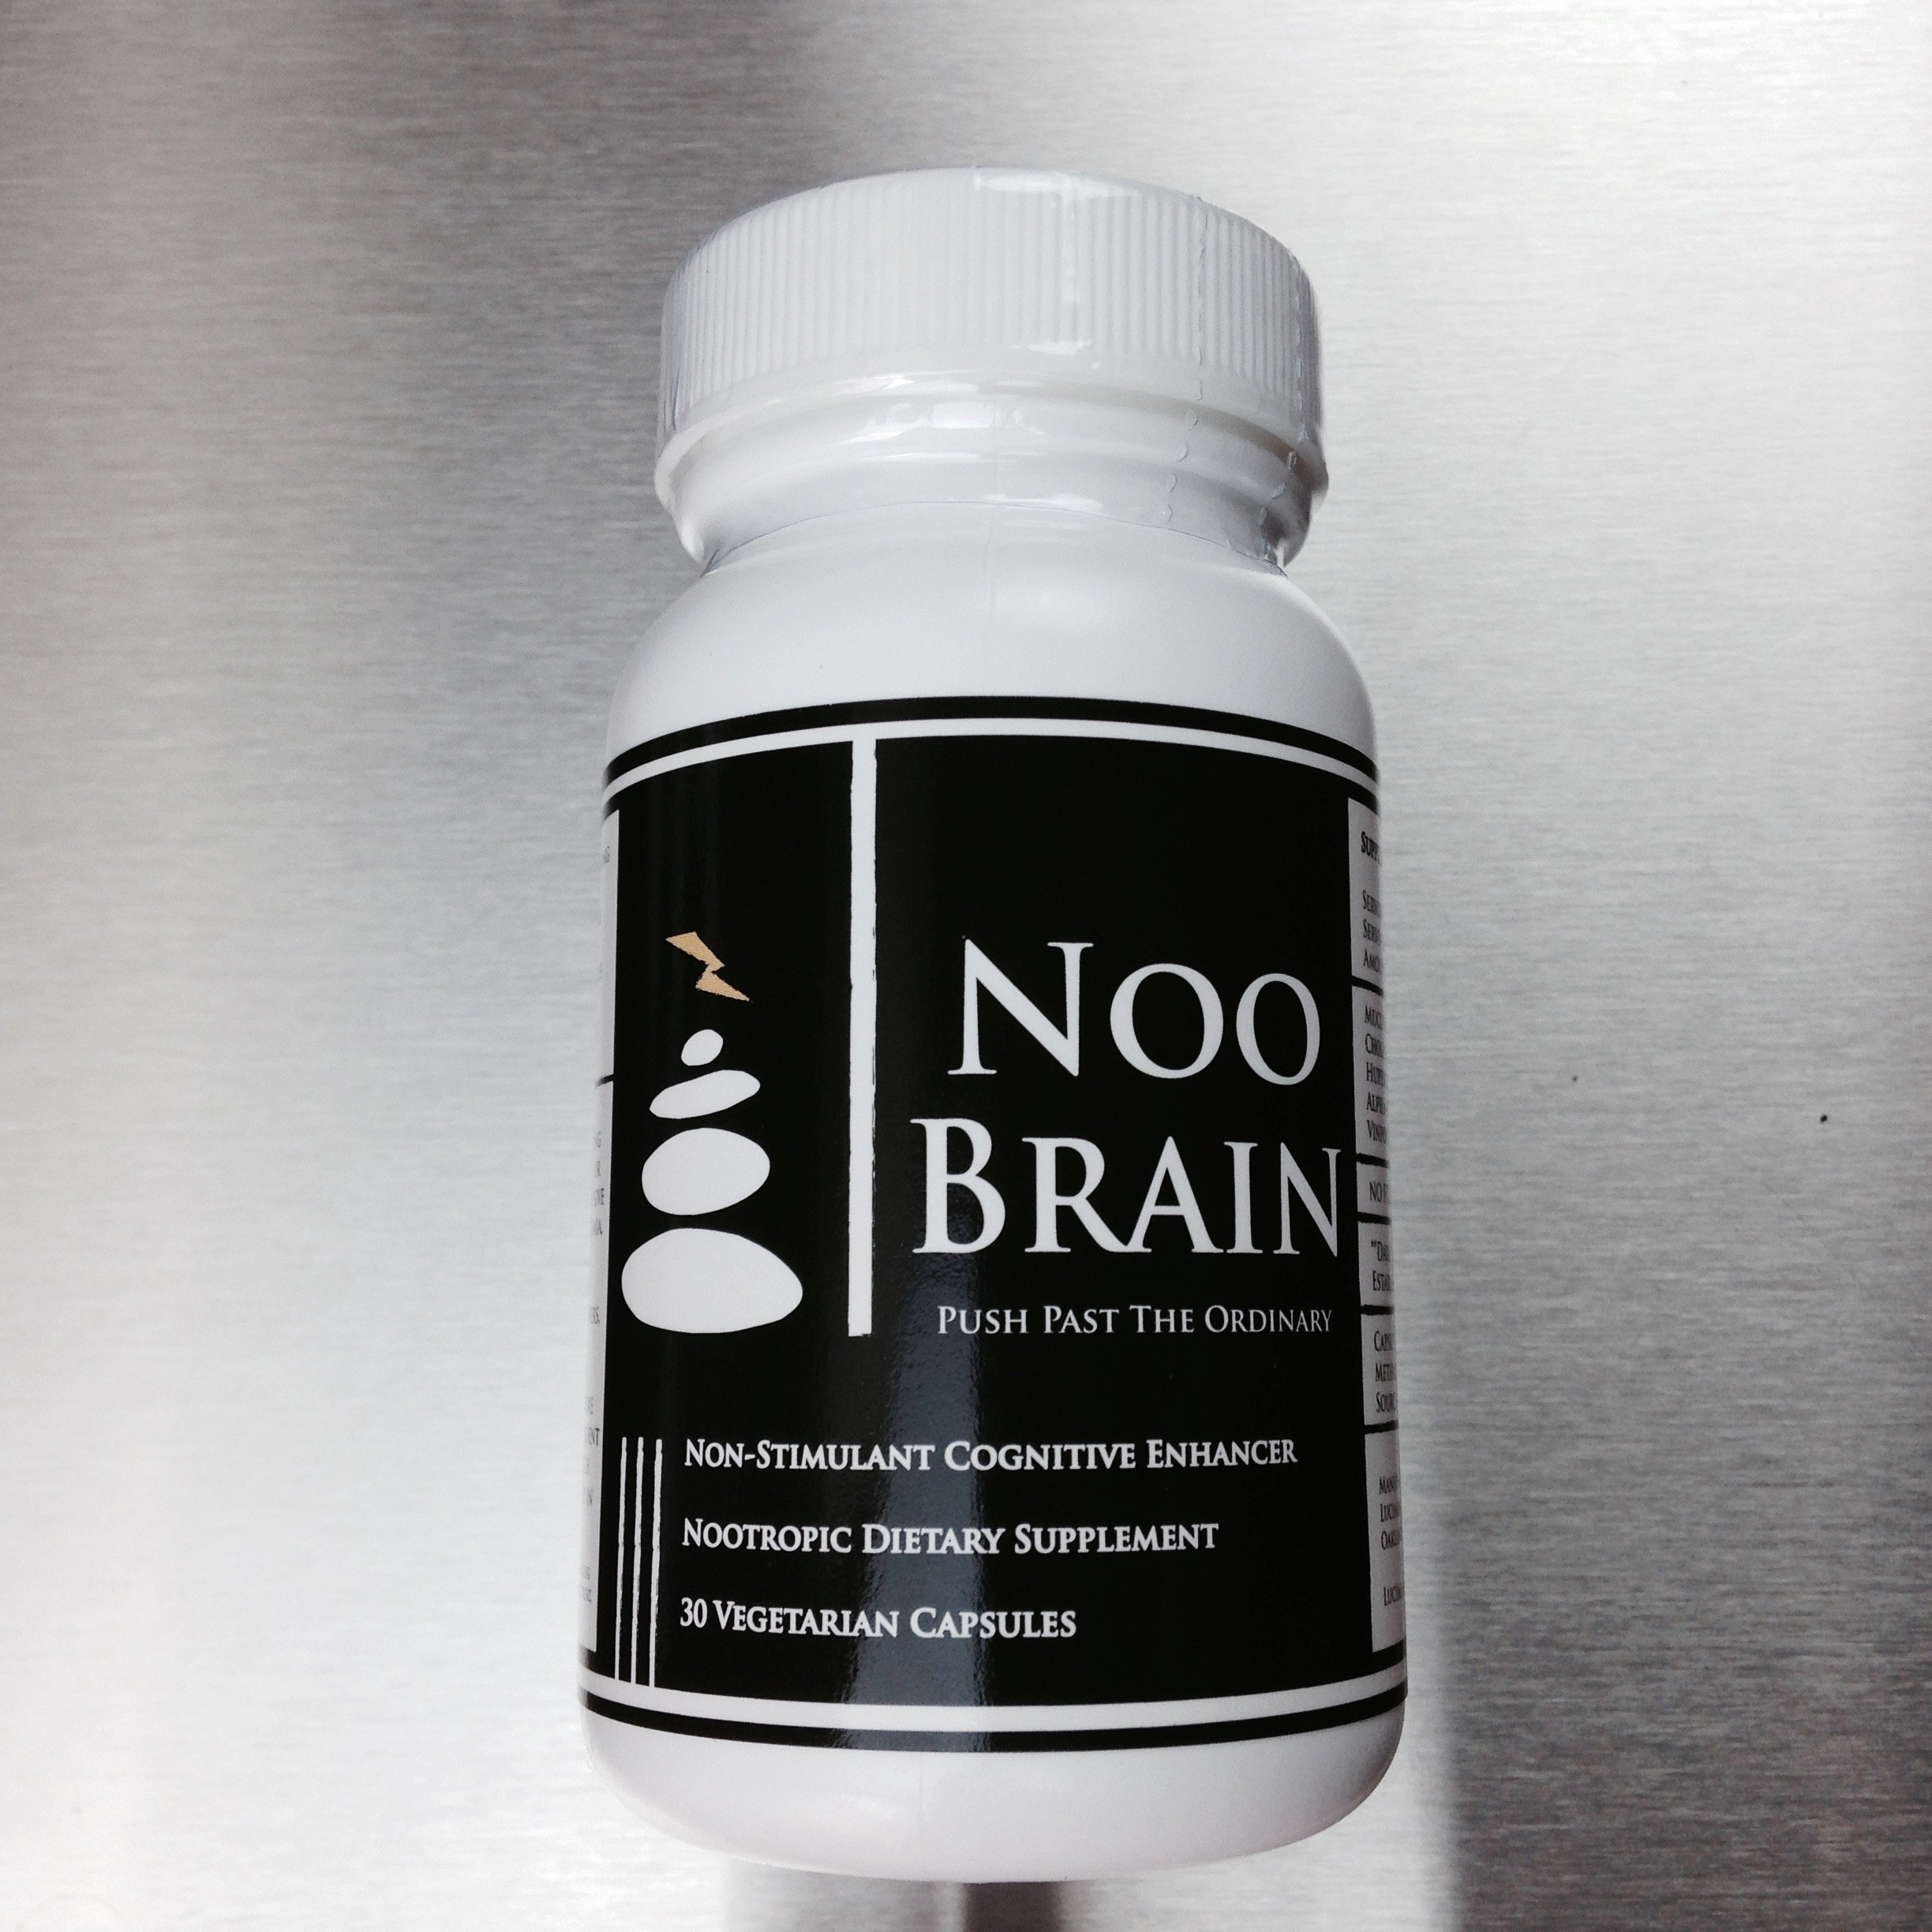 NOO BRAIN - Potent Nootropic Supplement Stack (with Mucuna, Huperzine A, Alpha GPC, Vinpocetine)